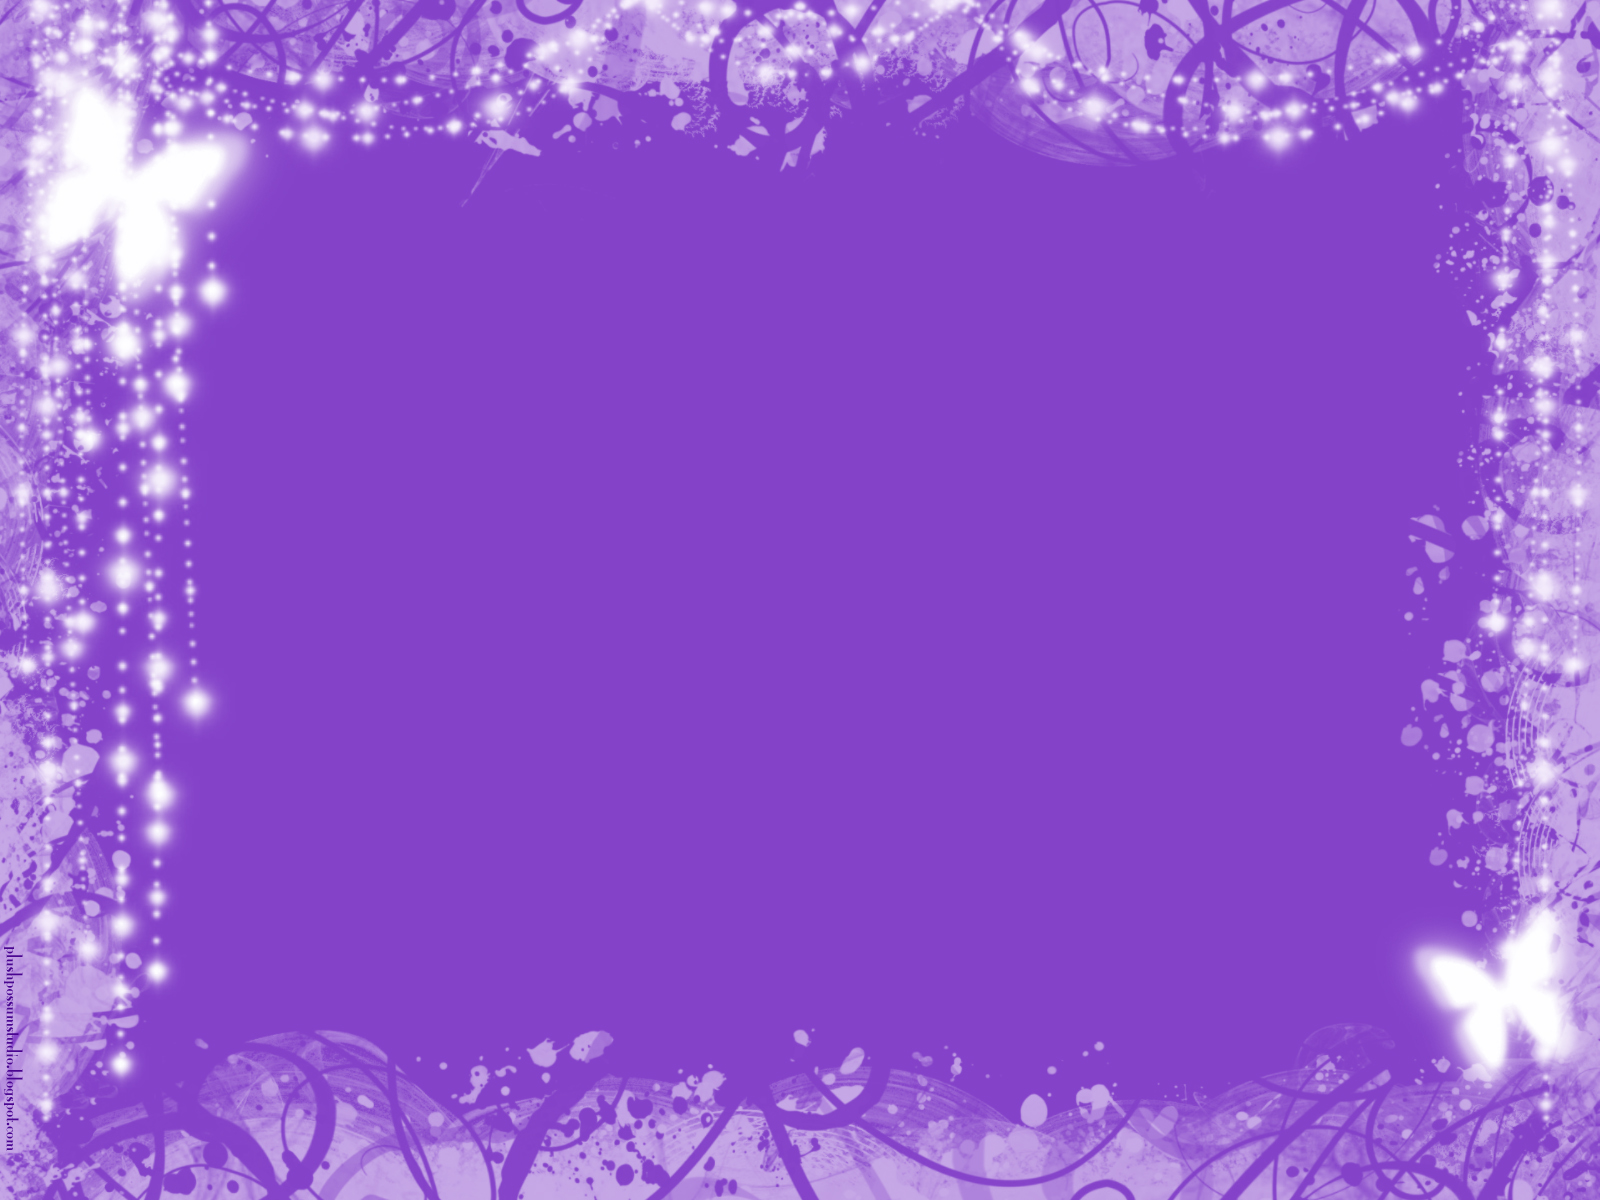 Purple Dream Twitter Background